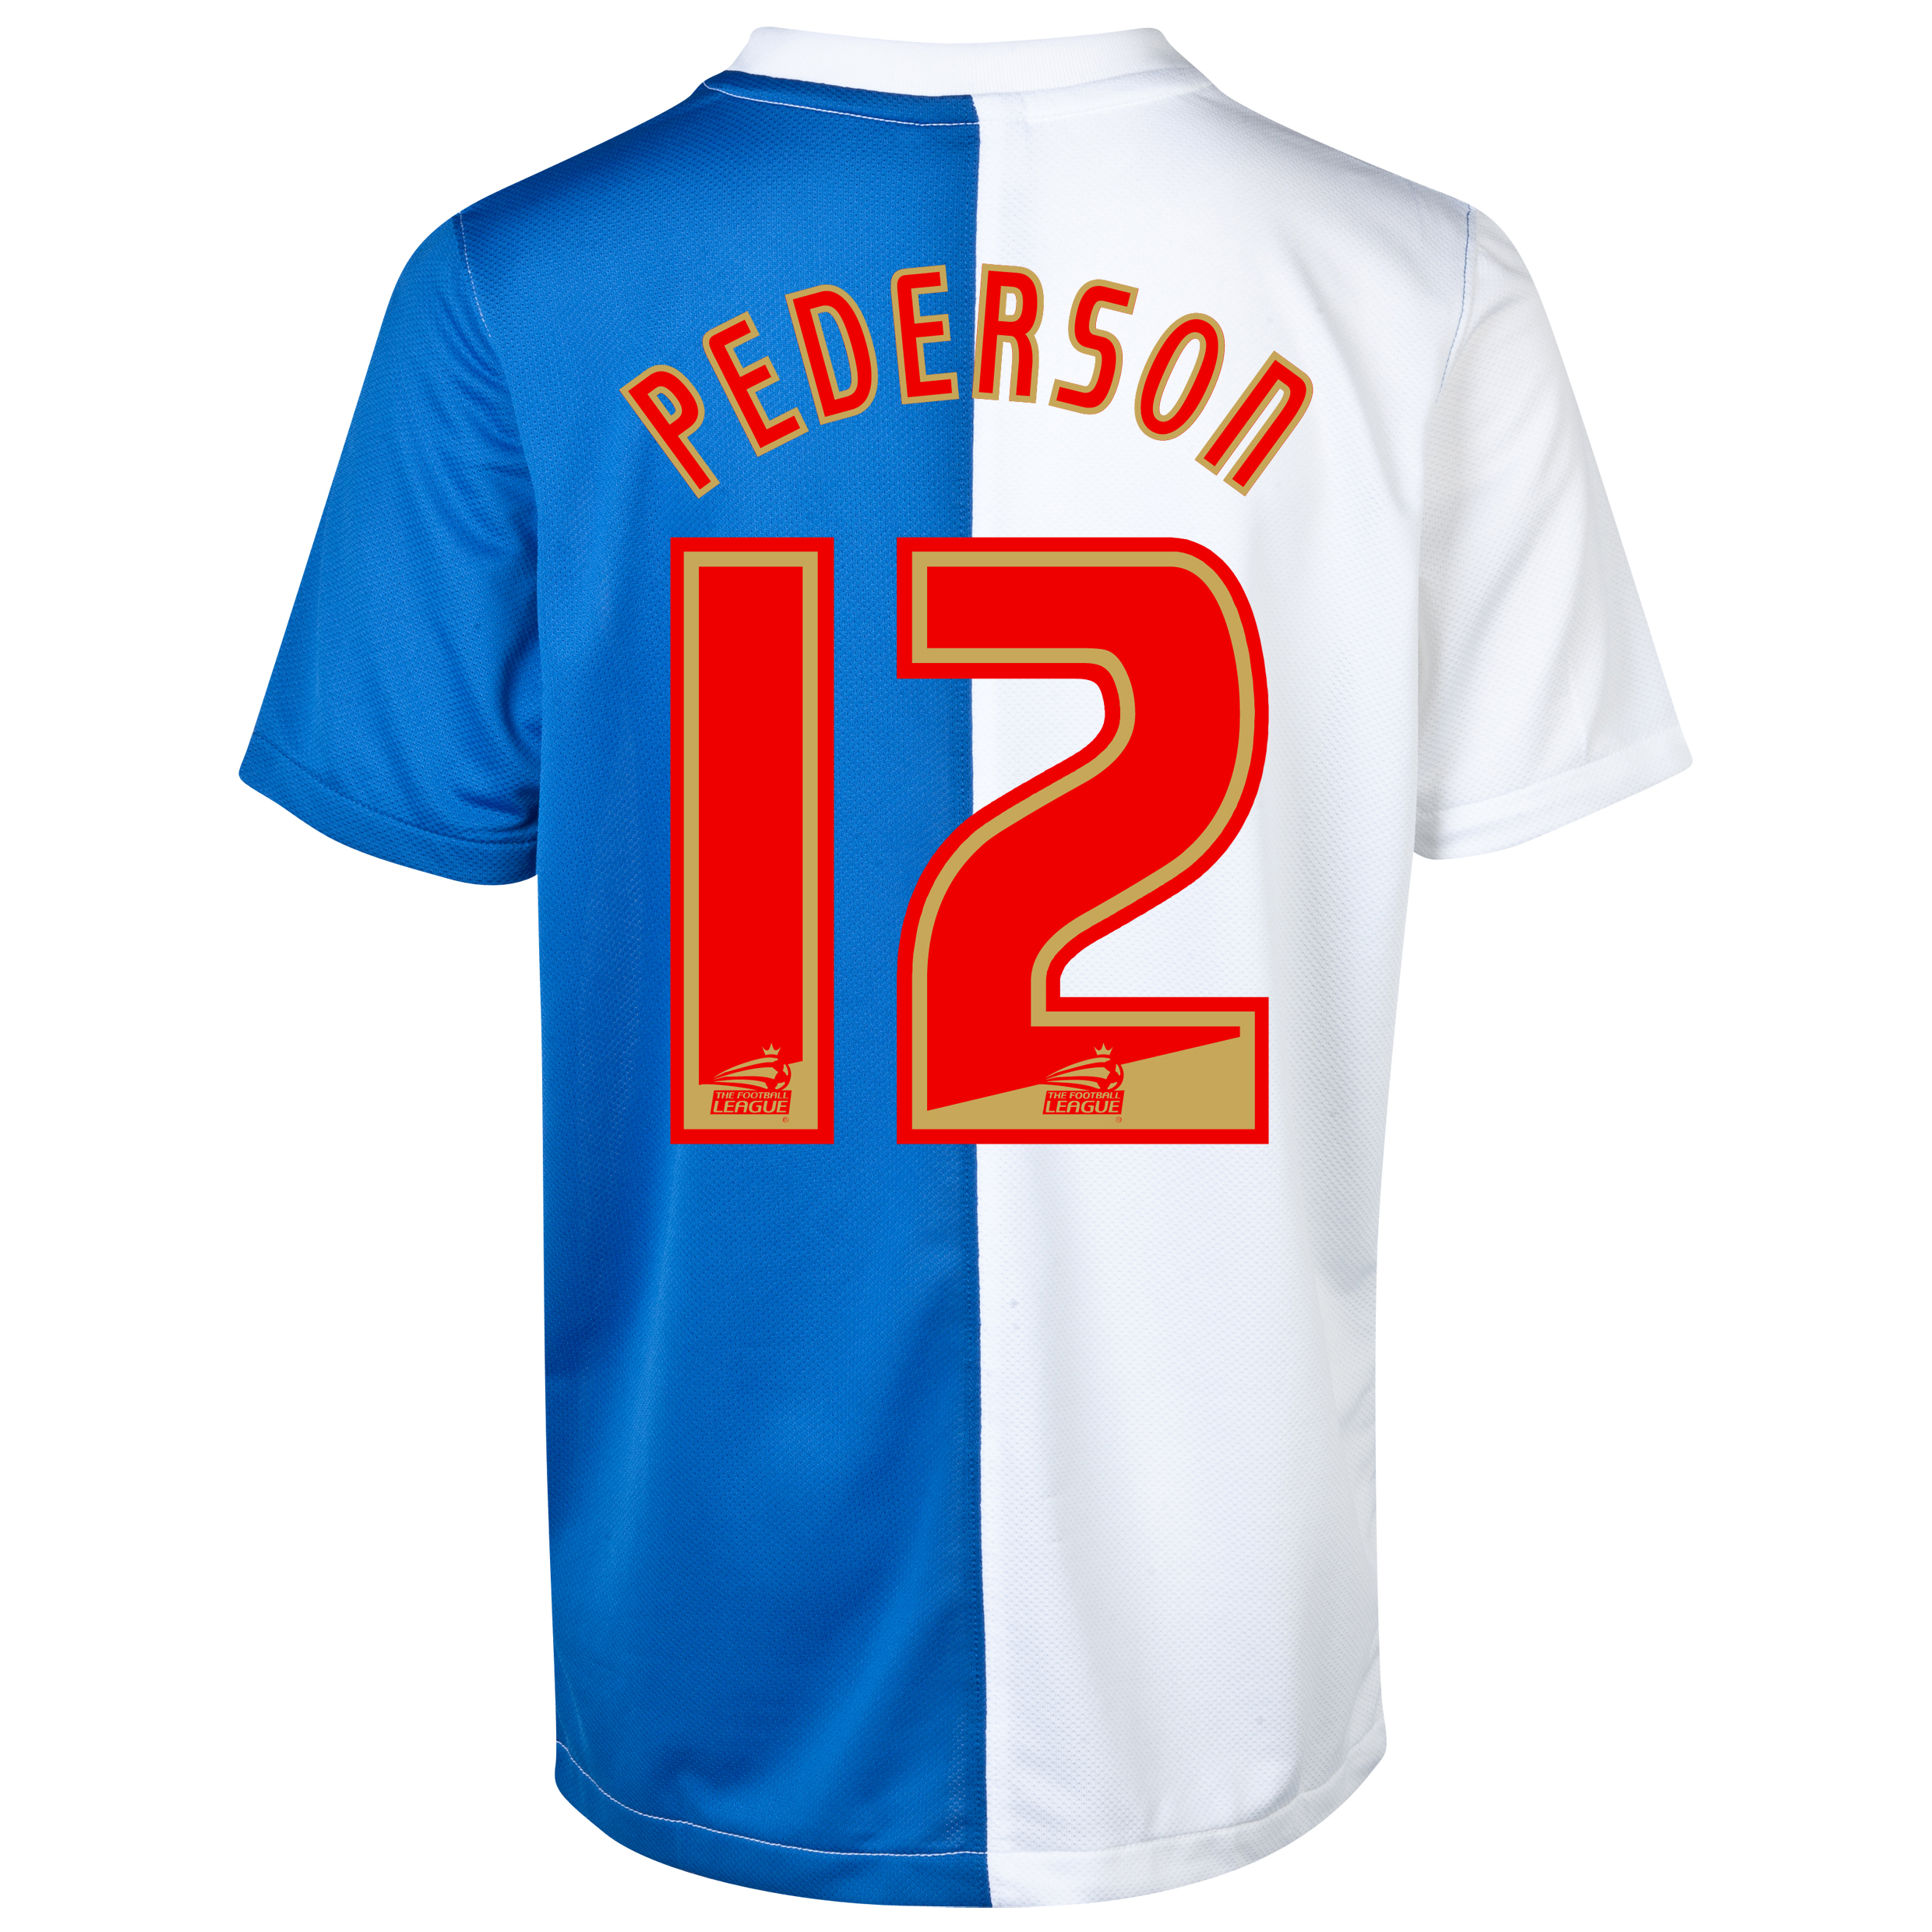 Blackburn Rovers Home Shirt 2013/14 with Pedersen 12 printing